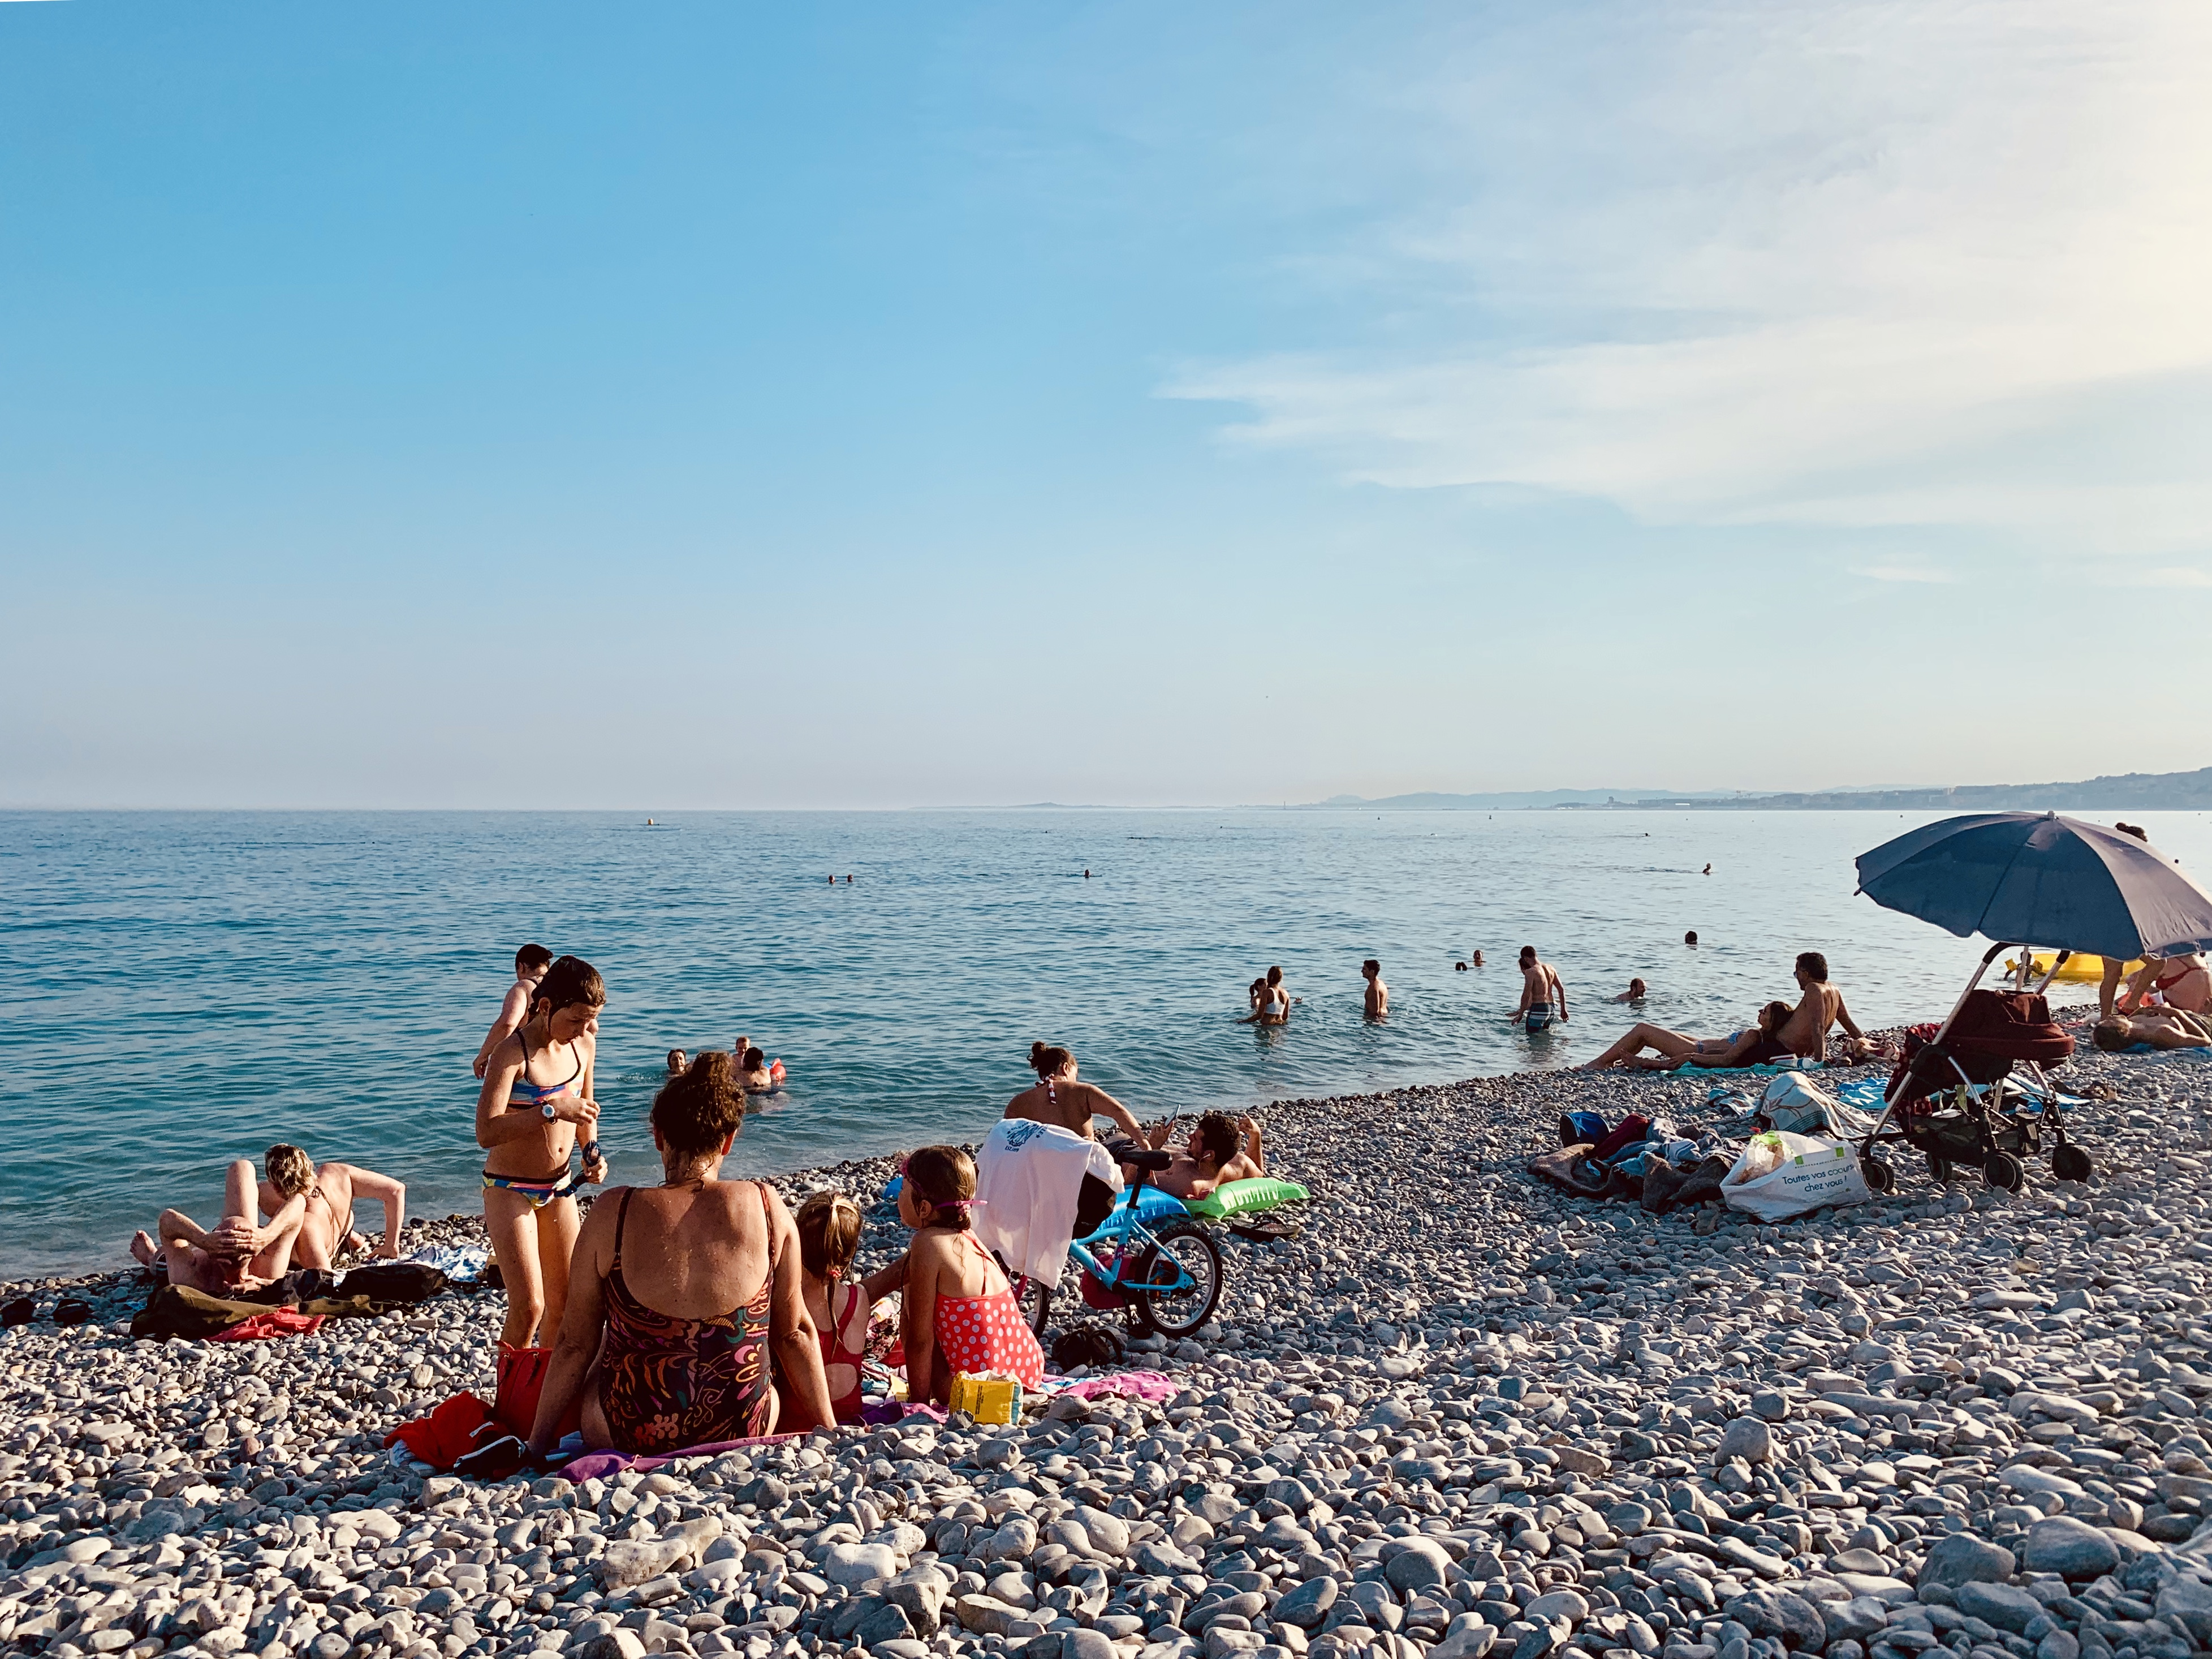 Beach of the Promenade des Anglais - Credit Summer Hotels